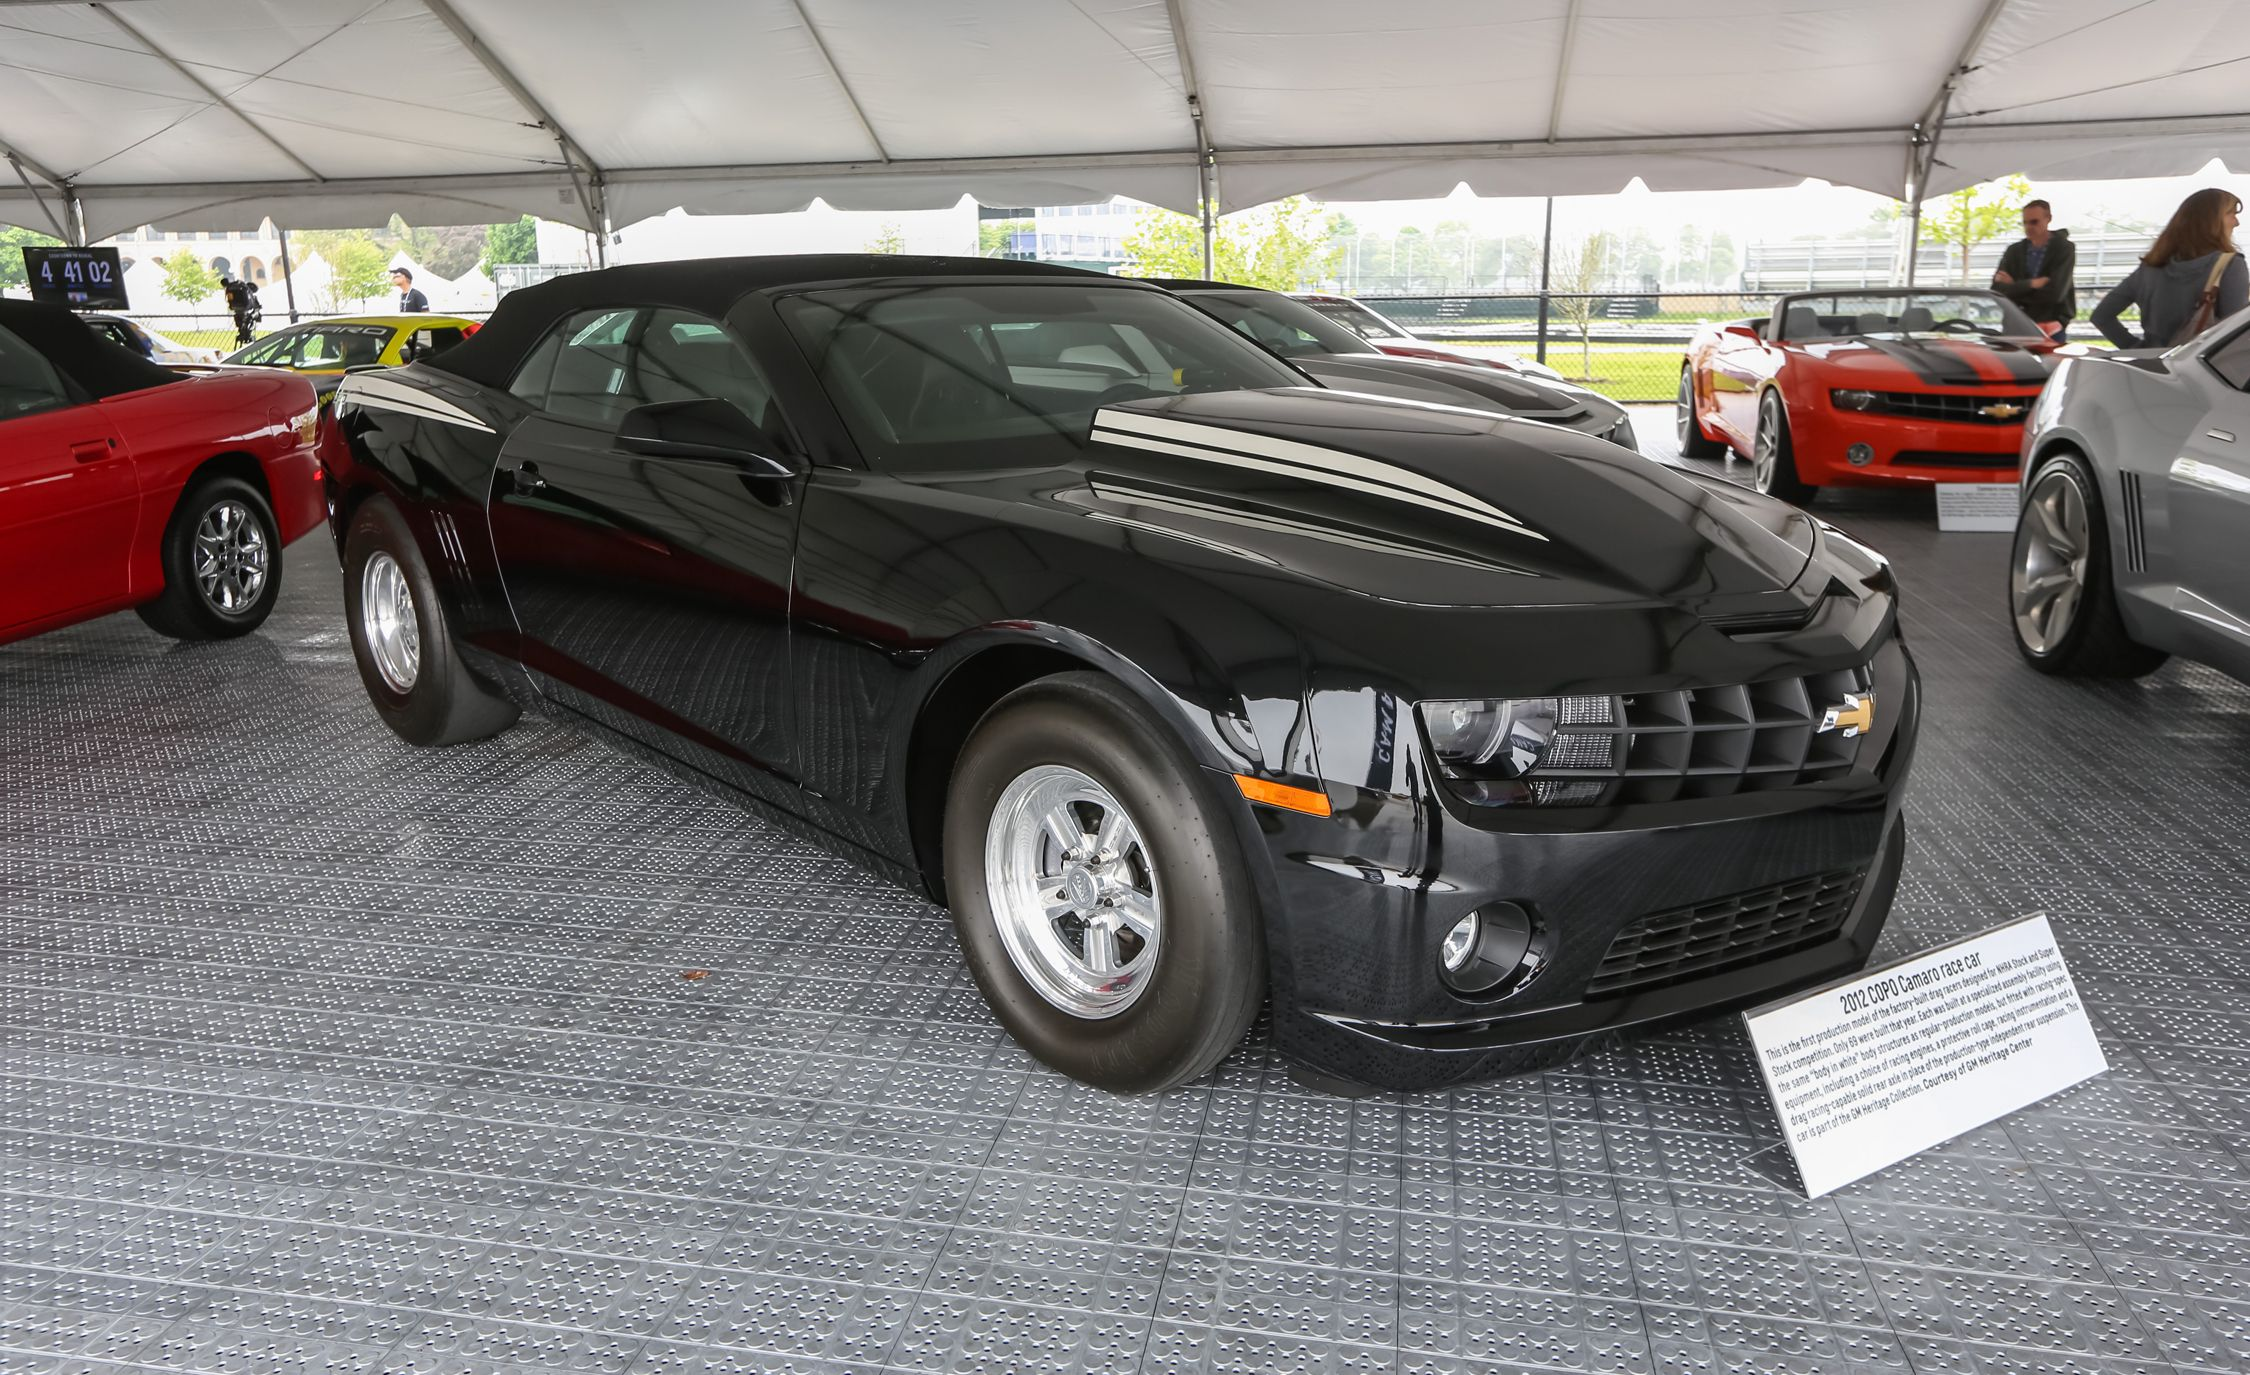 Tour the Historic Camaros Displayed at the 2016 Chevy